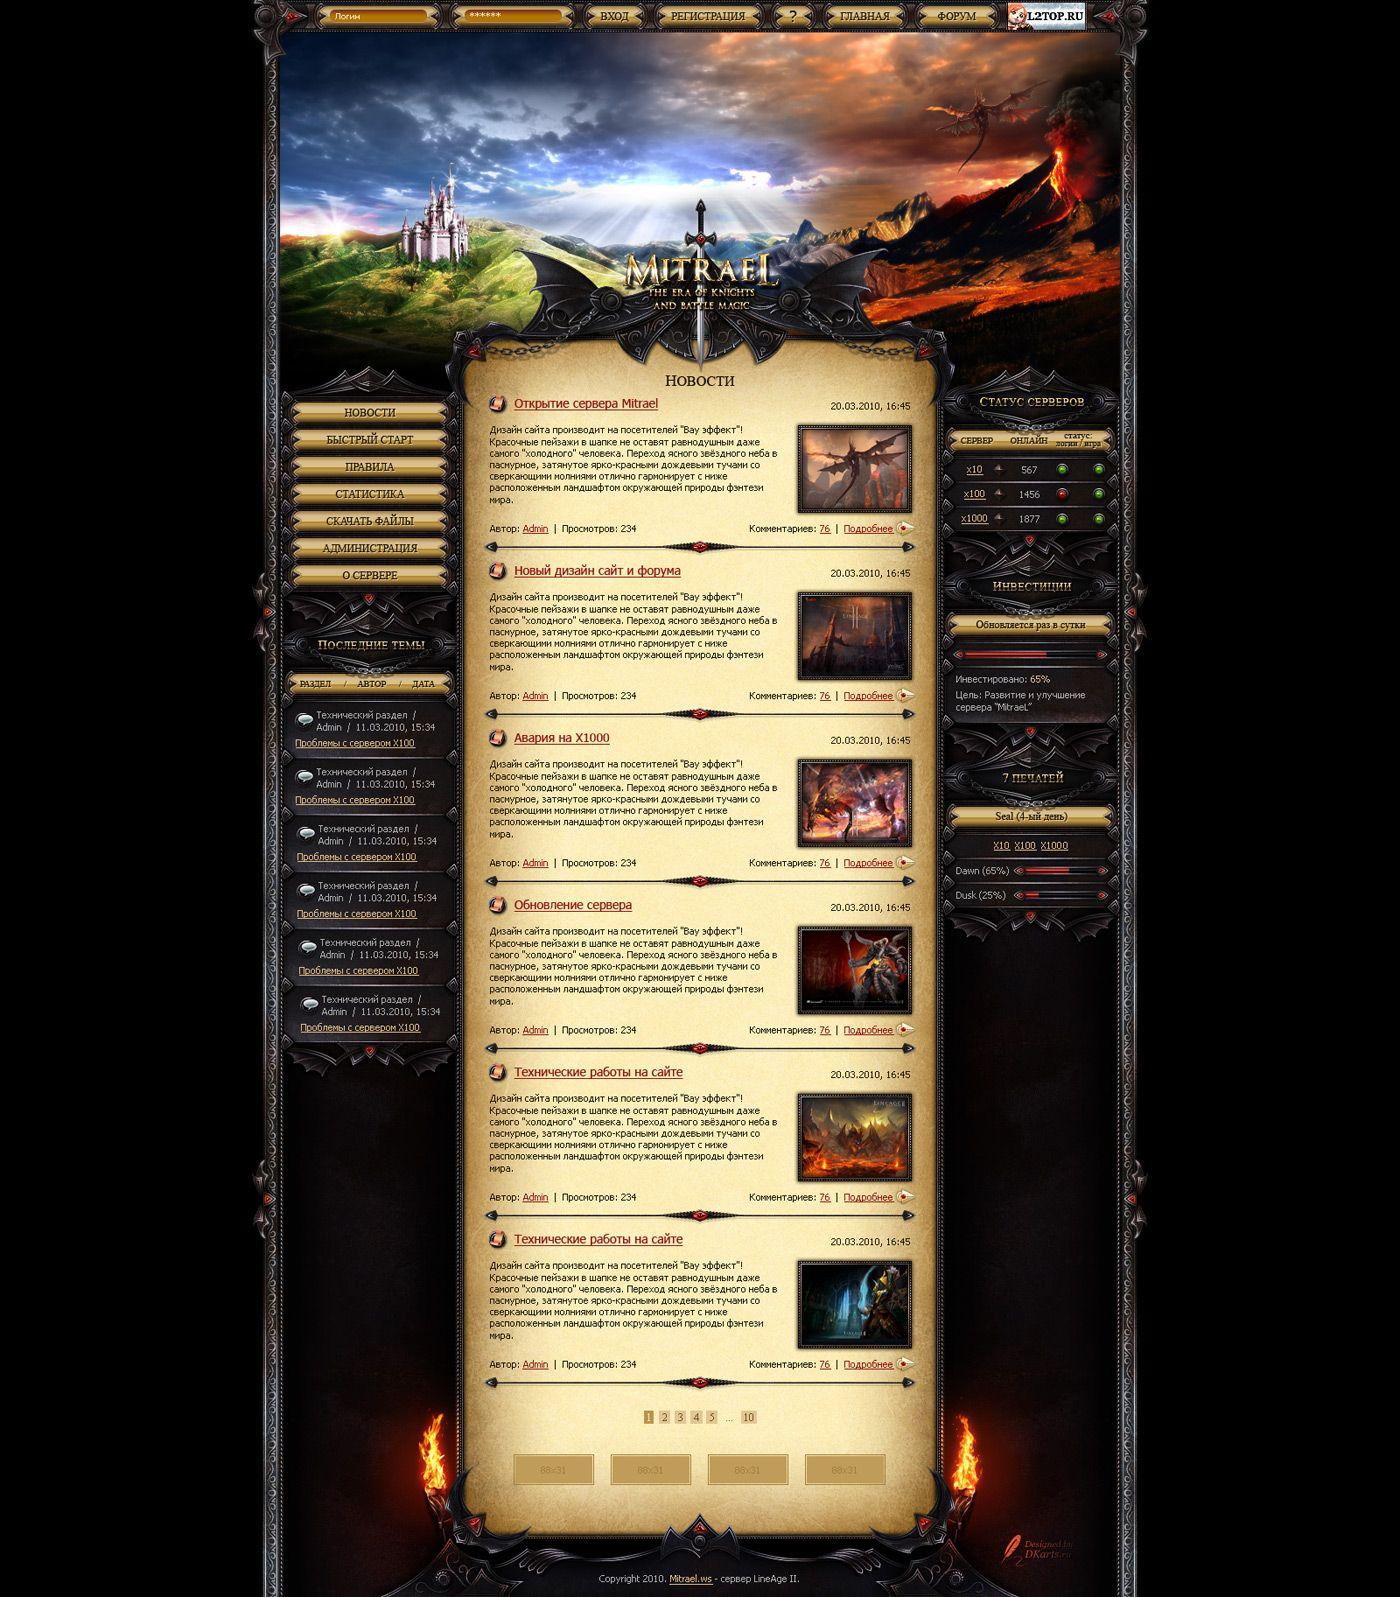 Mitrael Lineage Ii Server By Dkarts2009 In 2020 Game Design Document Template Website Template Templates Free Design